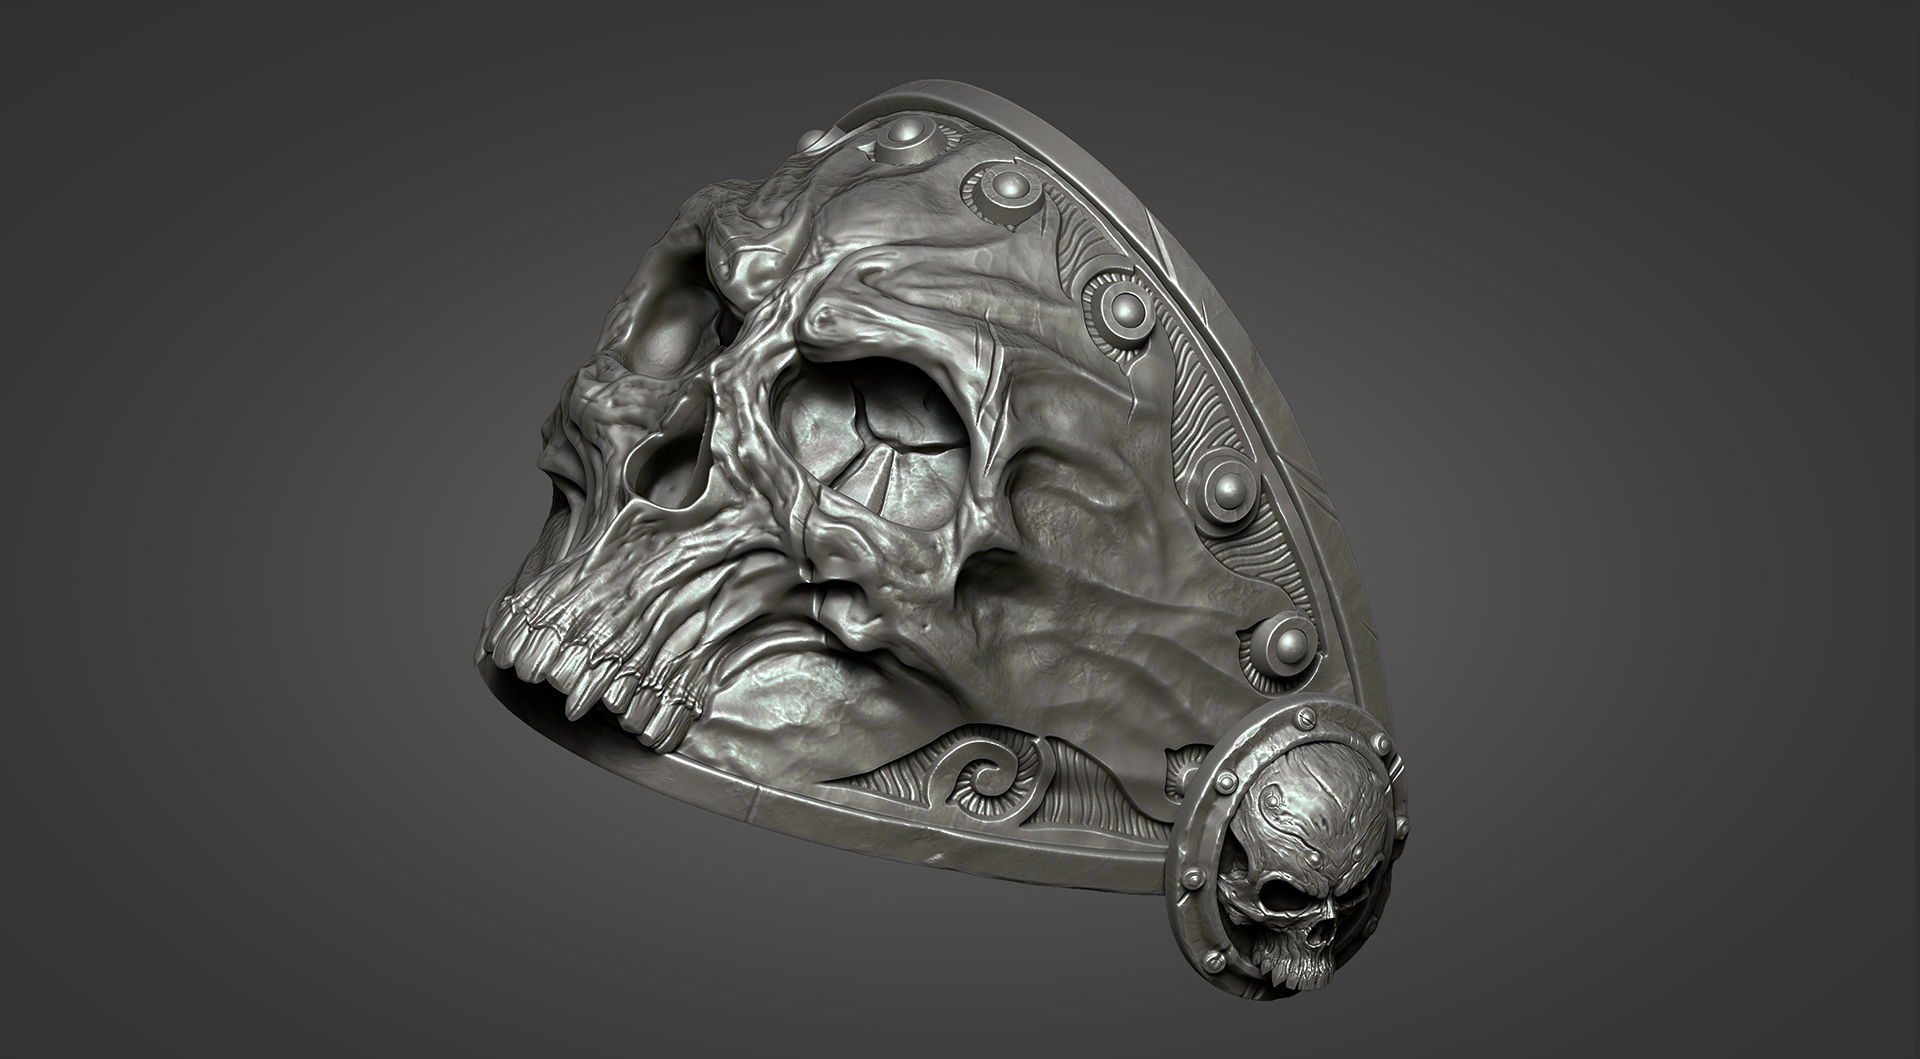 Lich King Armor - Right shoulder